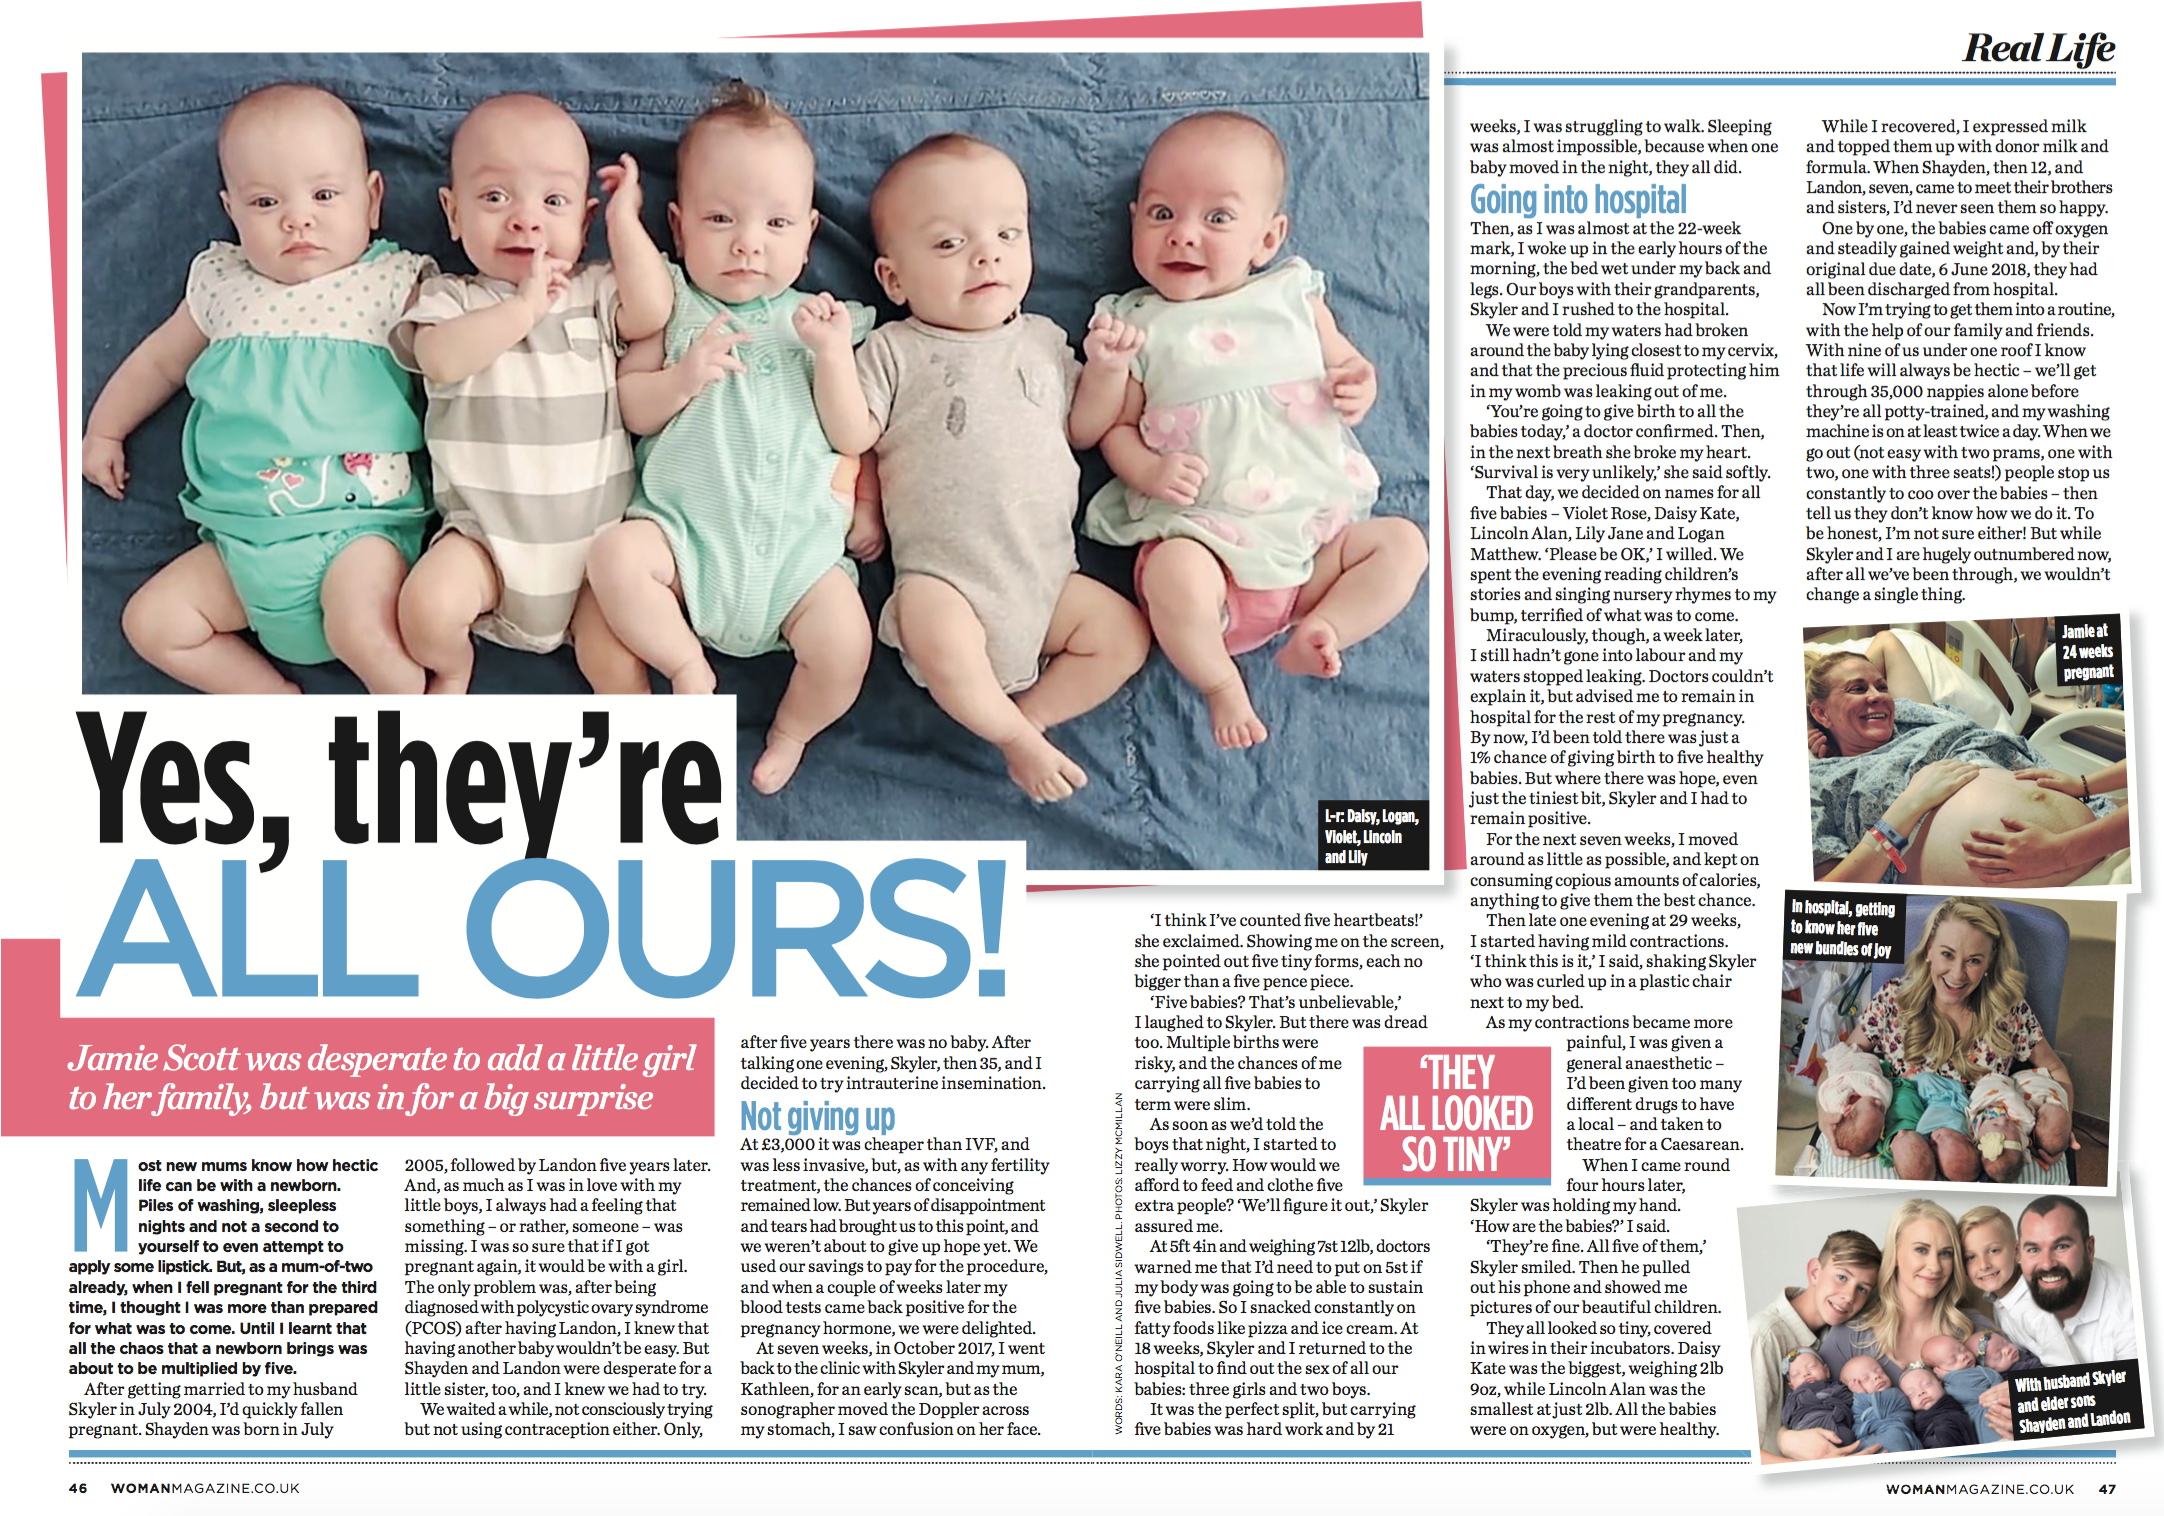 Woman: Quintuplets